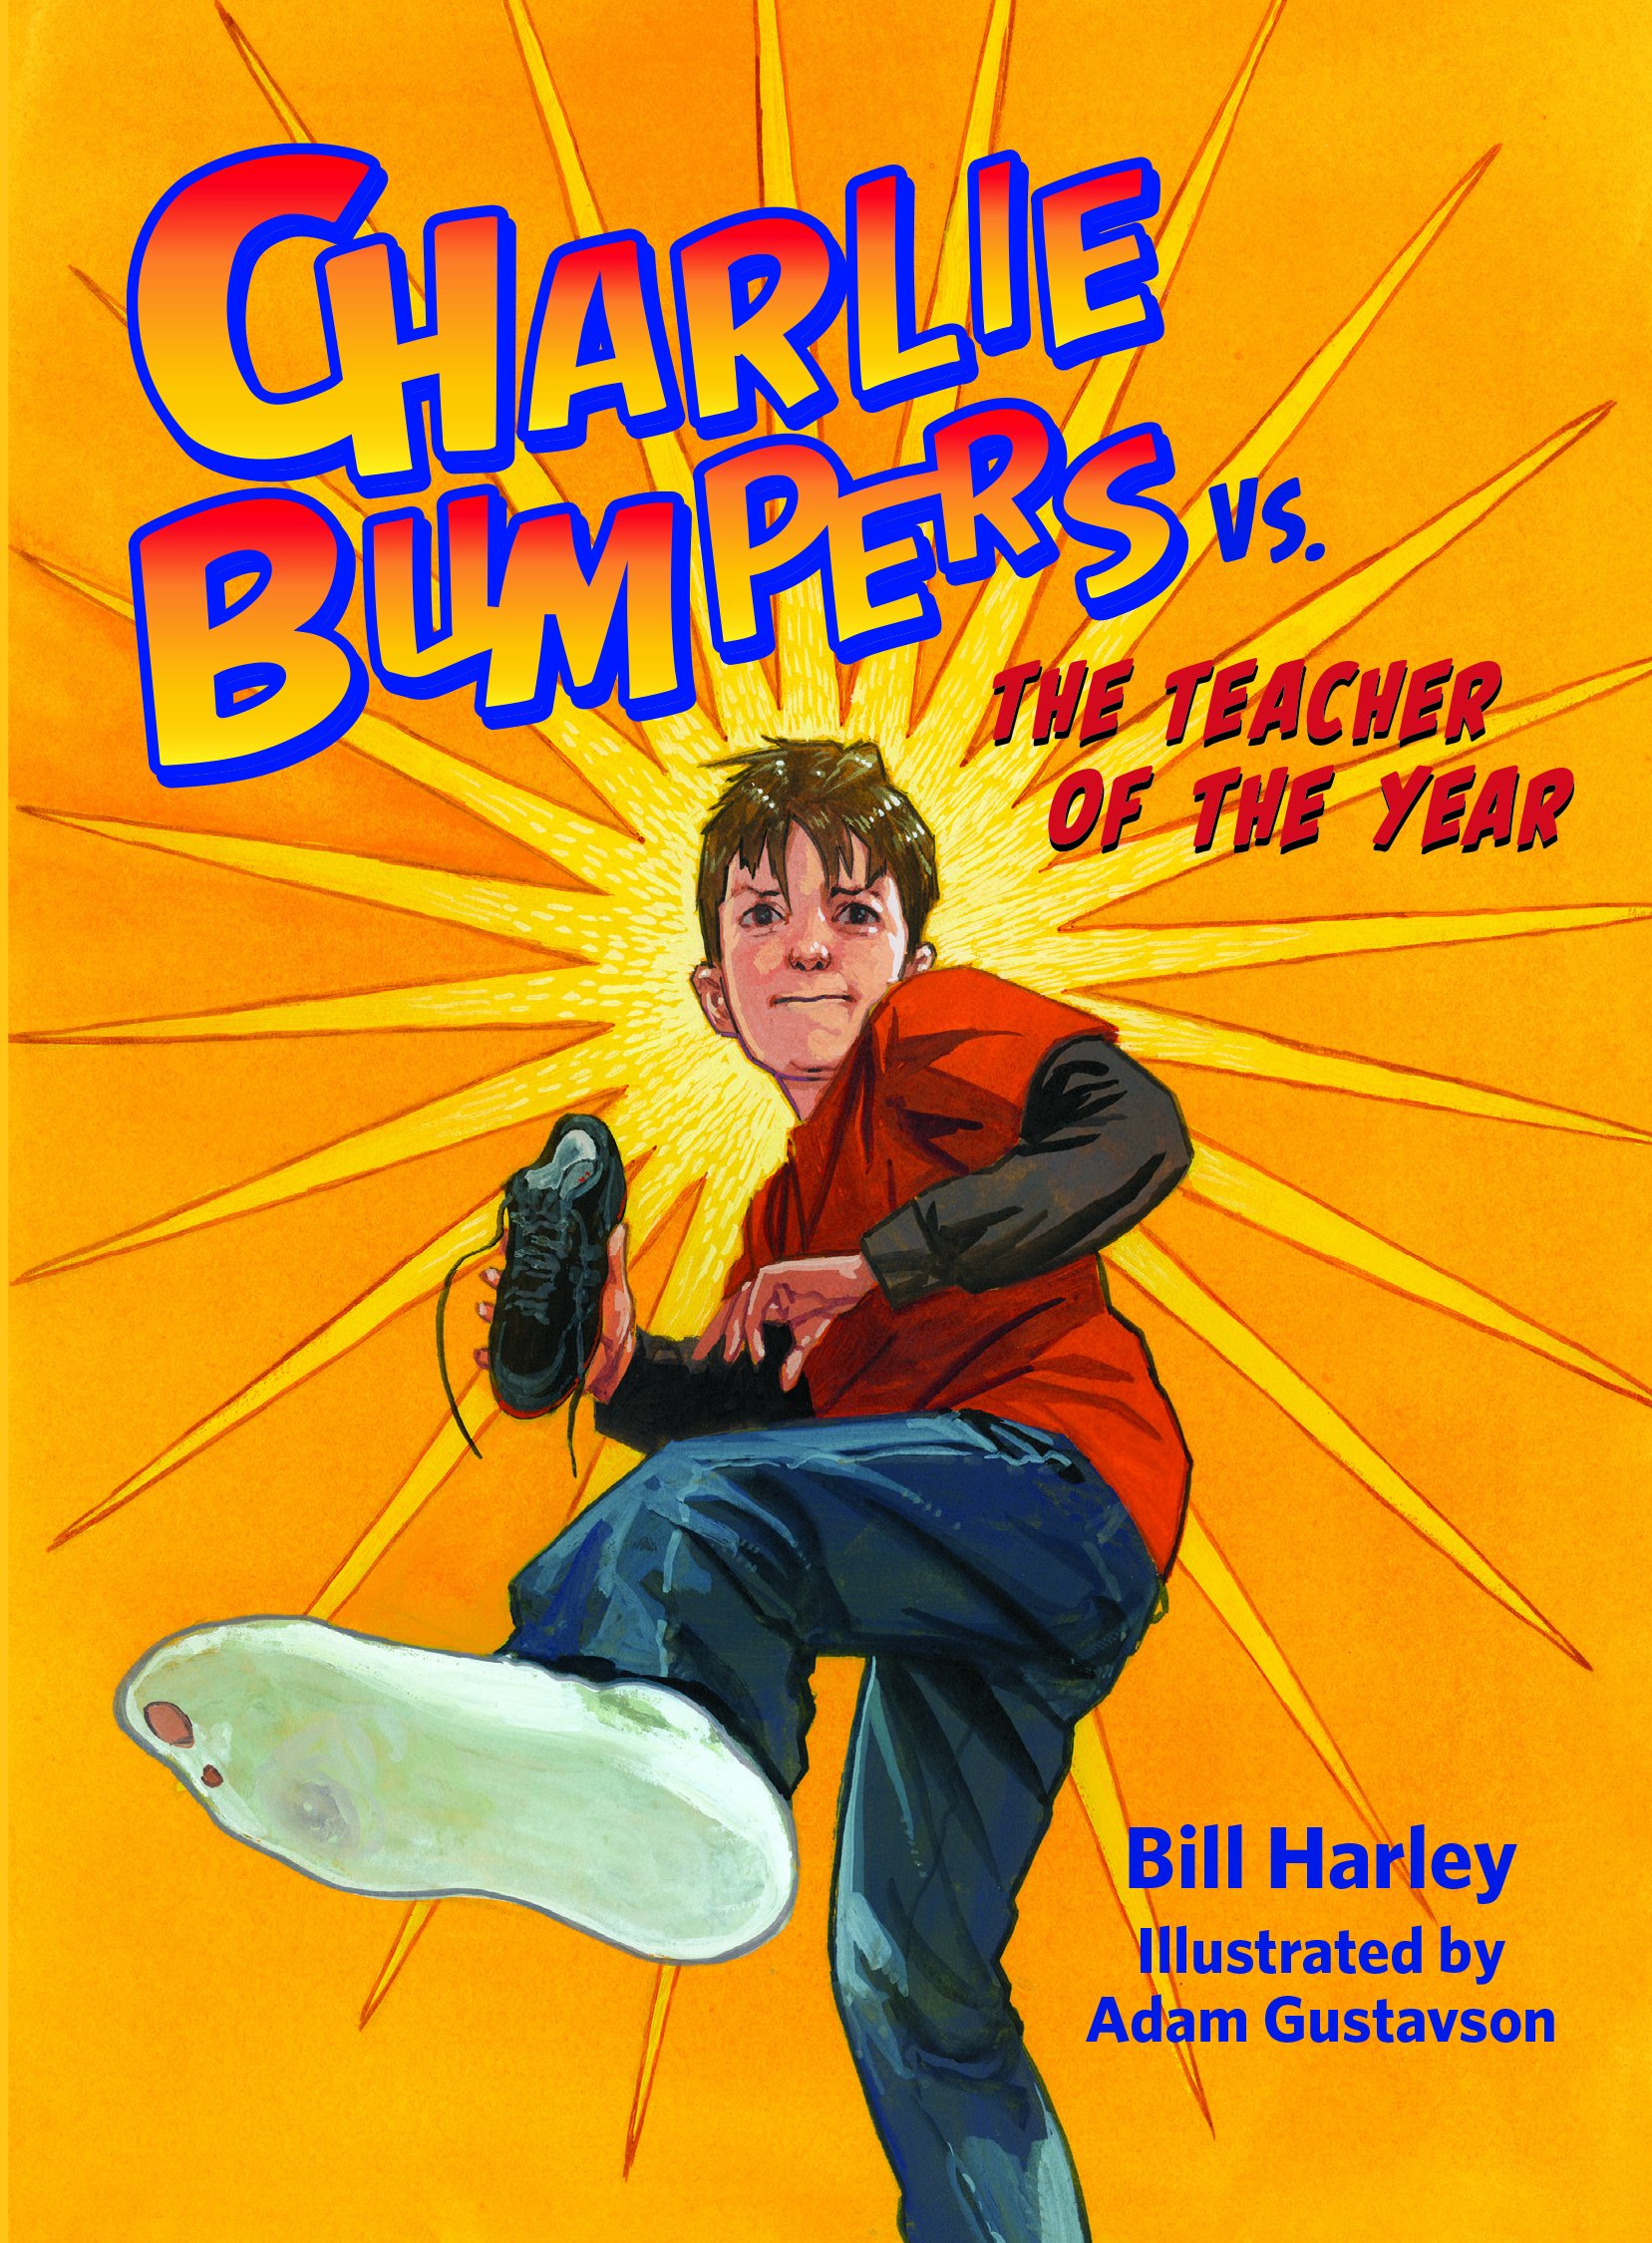 charlie bumpers vs the teacher of the year bill harley adam charlie bumpers vs the teacher of the year bill harley adam gustavson 9781561458240 com books